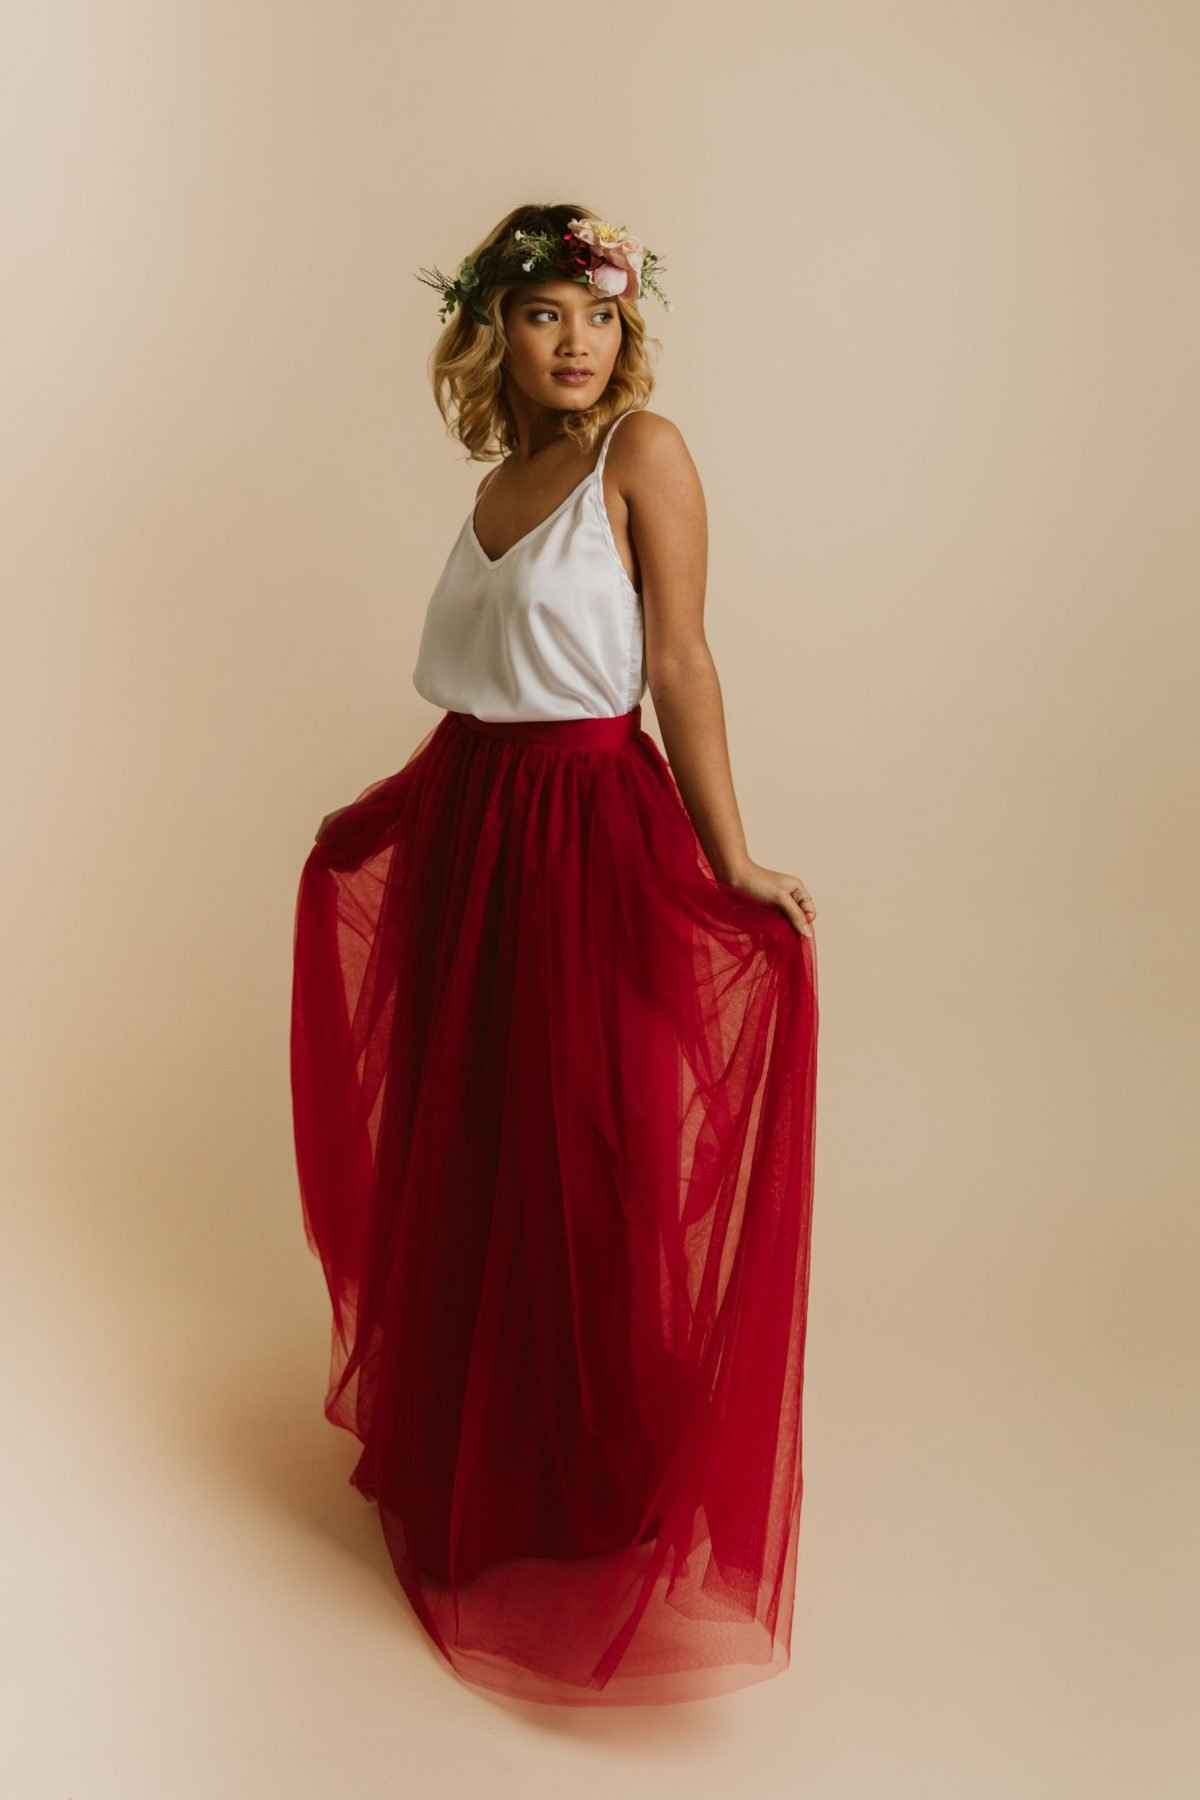 Bridesmaid Skirt and Top